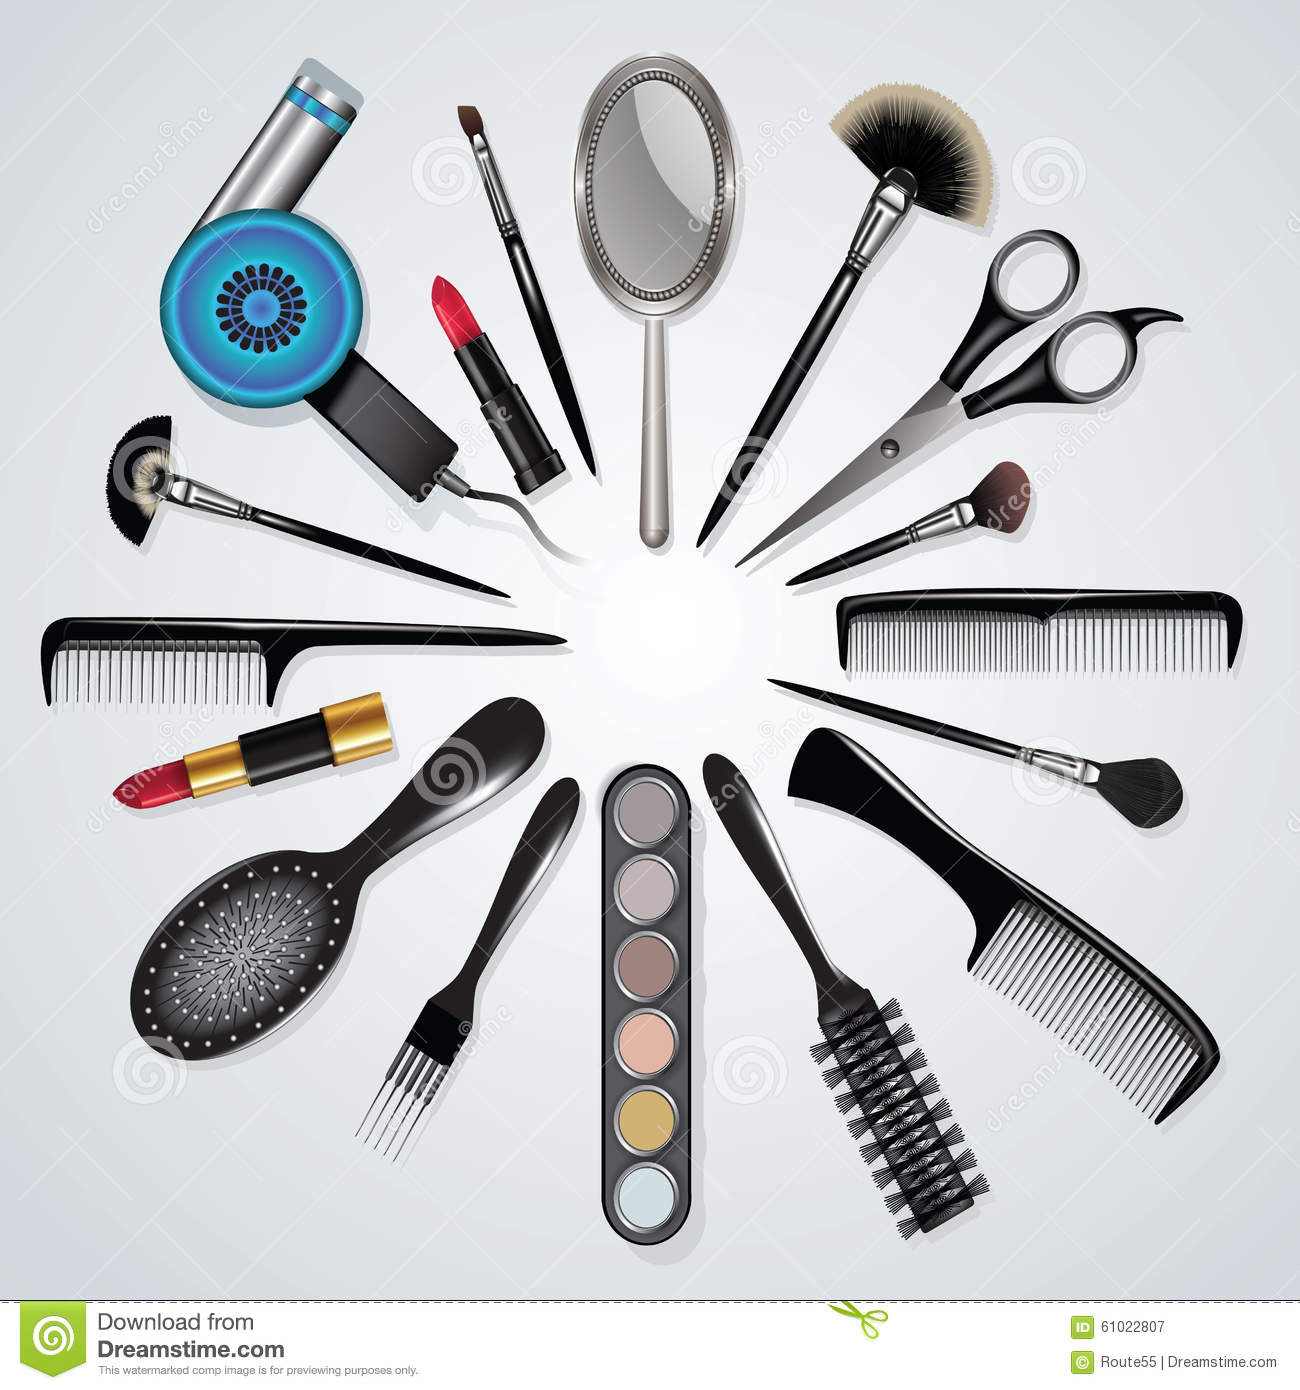 images of hair stylist tools spacehero